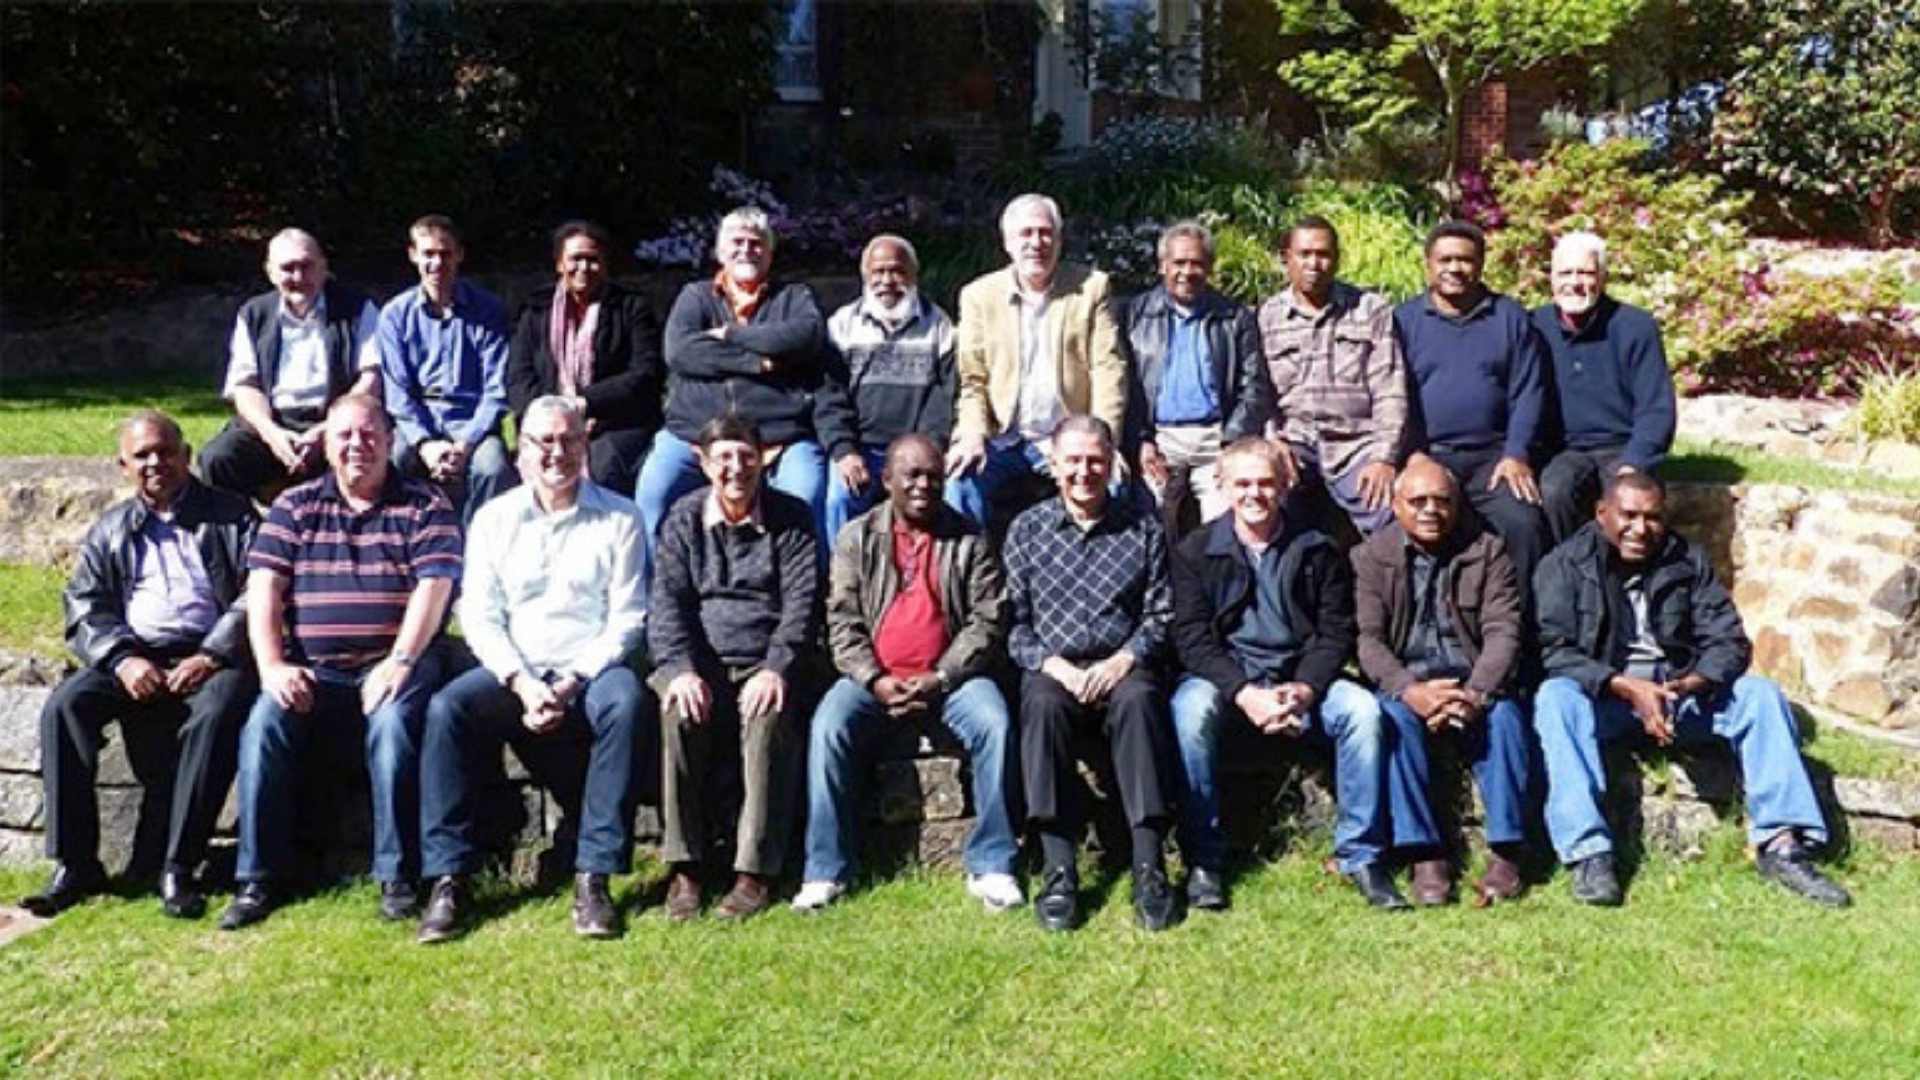 INTERNATIONAL LEADERS GATHERING 2014  BACK ROW (LEFT TO RIGHT) Barry Silverback, Jono Osborne, Gena Wari, Hans Voortman, Peter Igarobae, Bill Vasilakis, Fuwe Hageyo, Ai Wari, Alipate Yagomate, Neil Milne  FRONT ROW (LEFT TO RIGHT) Earnest Somanathan, David Wallace, Danny Parker, Kevin Hughes, Remy Adams, Mike Cronin, David Wright, Jimmy Vasula, Barnabas Tabara